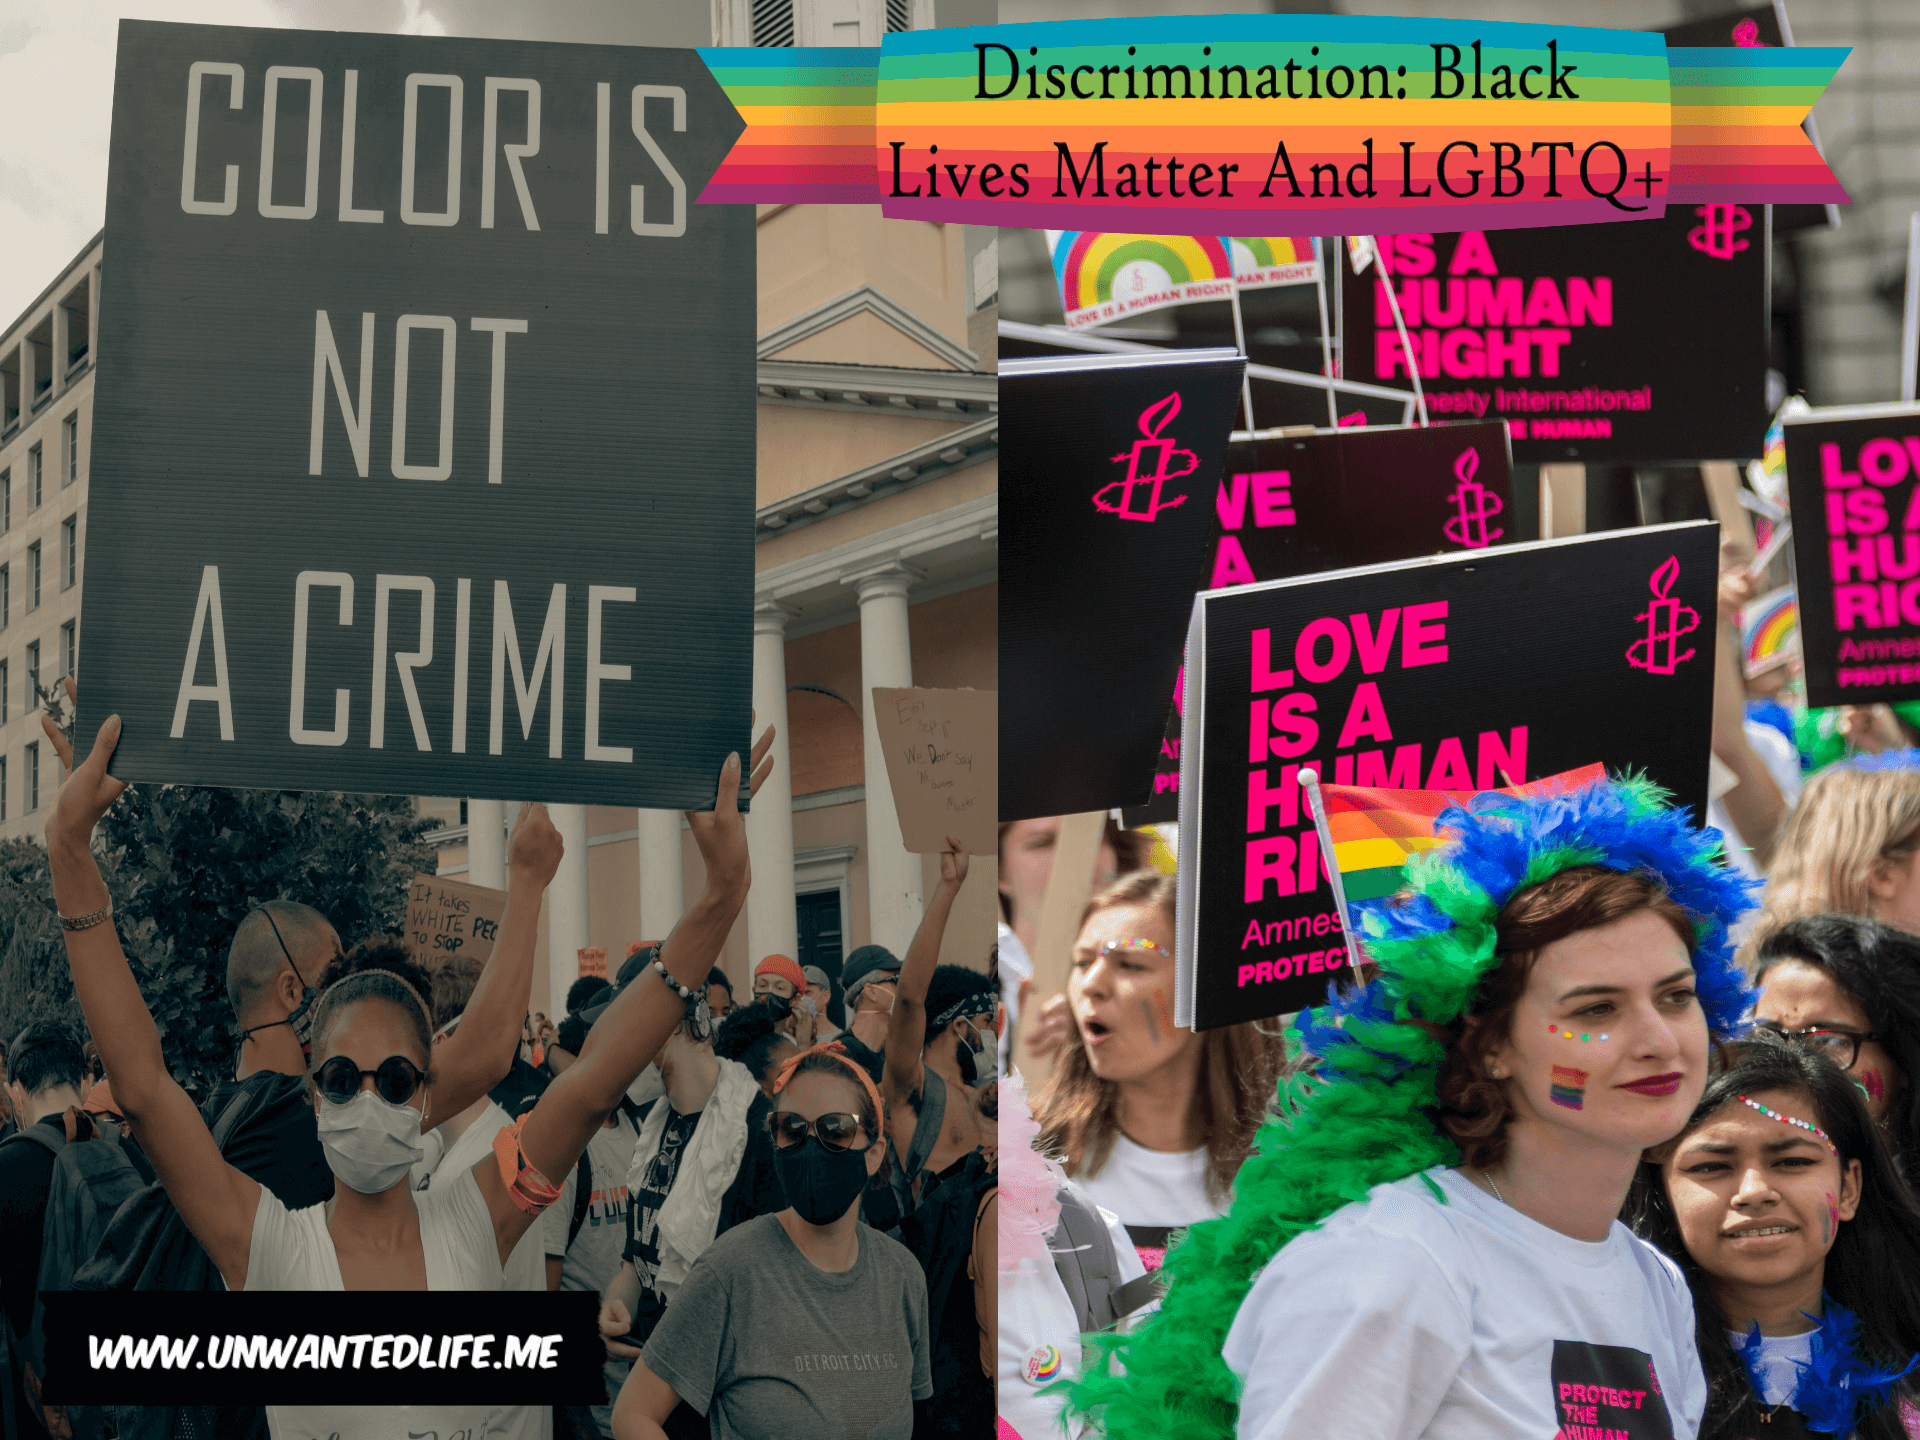 "The image is split in two down the middle with the left image being a photo of the BLM protest with one protesters holding a sign that says ""color is not a crime"" and the right image is of an LGBTQ+ protest with people holding signs that say ""Love is a human right. Both images represent the topic of the article - Discrimination: Black Lives Matter And LGBTQ+"